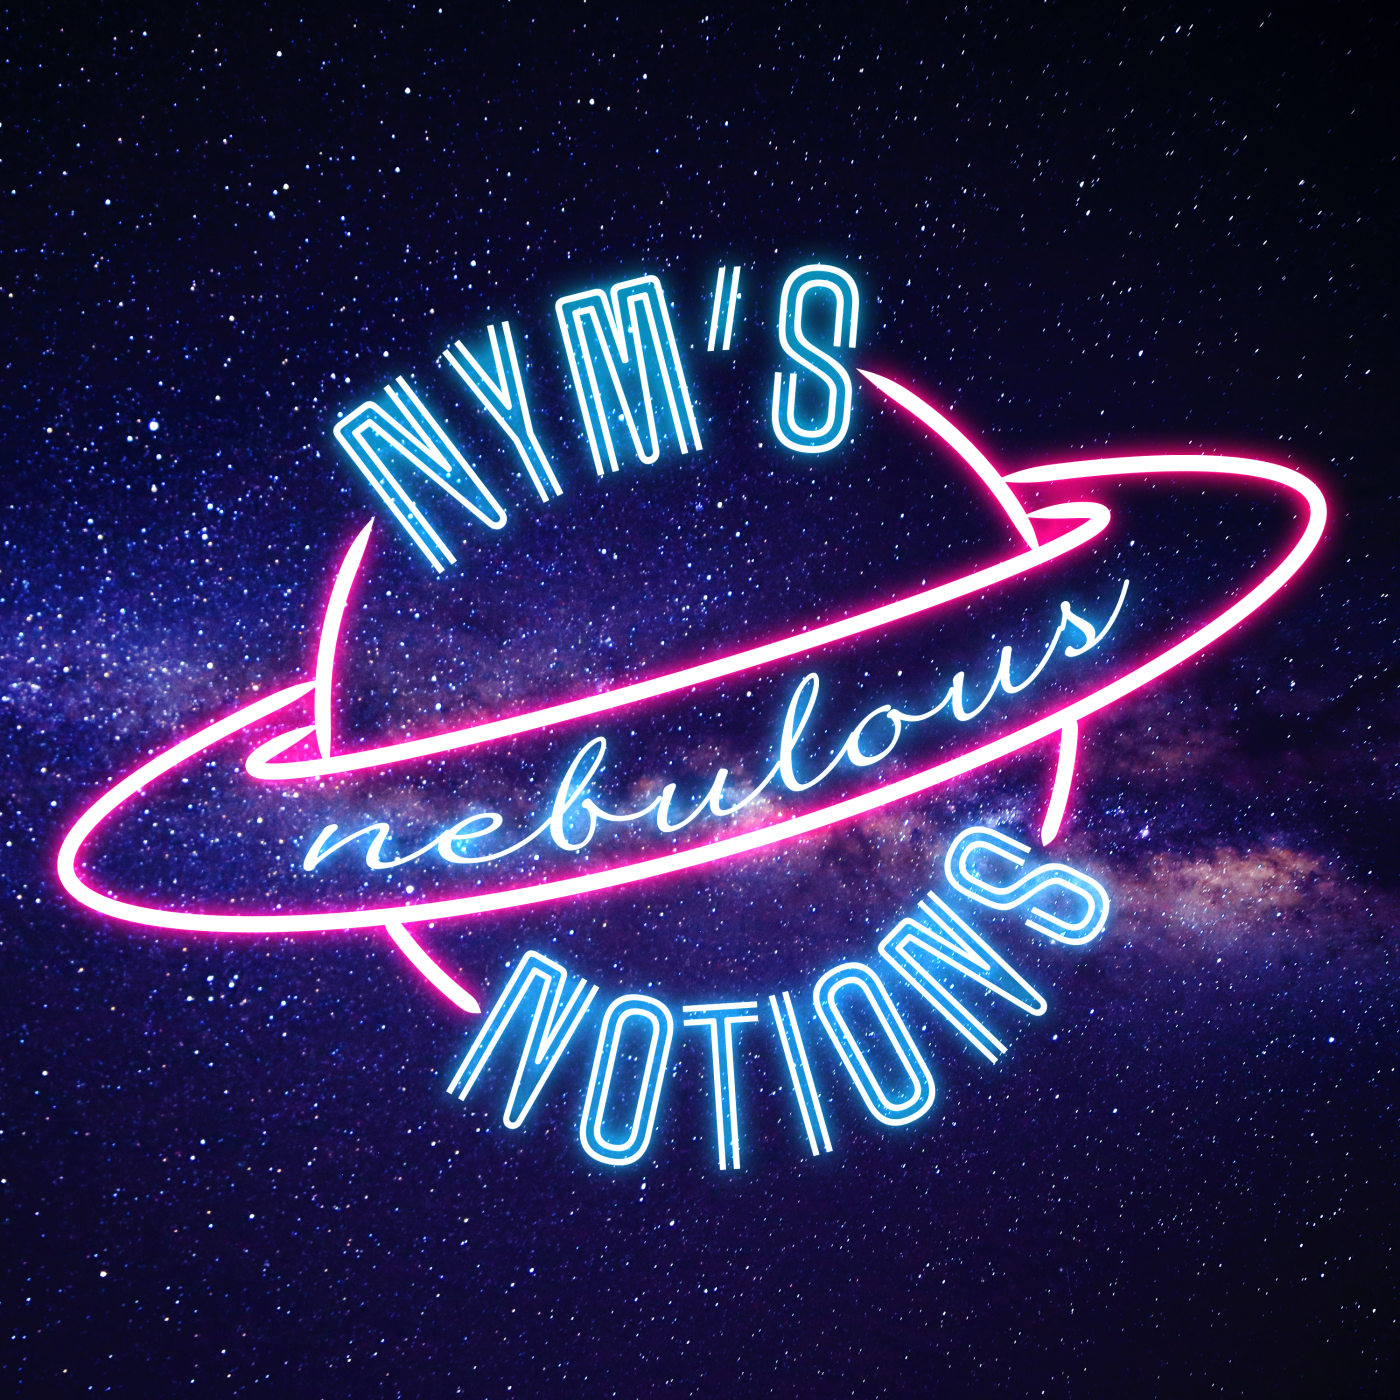 """The Nym's Nebulous Notions cover art, which is a neon sign on a background of galaxies. The sign is in blue and pink, and it reads """"Nym's Nebulous Notions"""", and the words are wrapped around a glowing planet."""